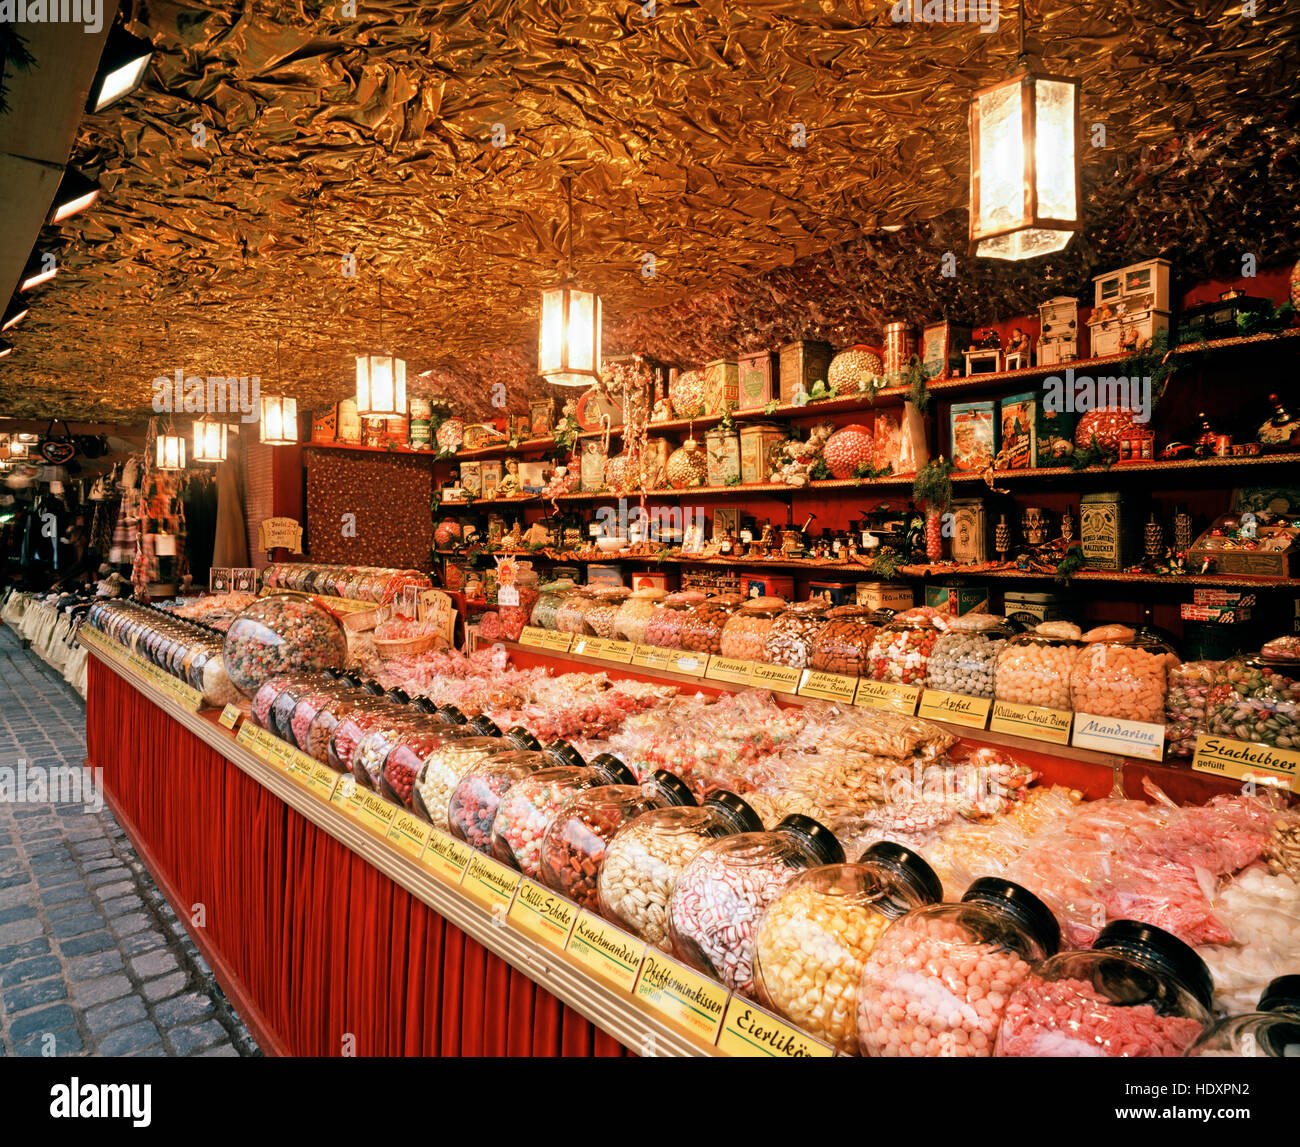 Nuremberg Christmas Market.Nuremberg Christmas Market Nuremberg Germany Stock Photo